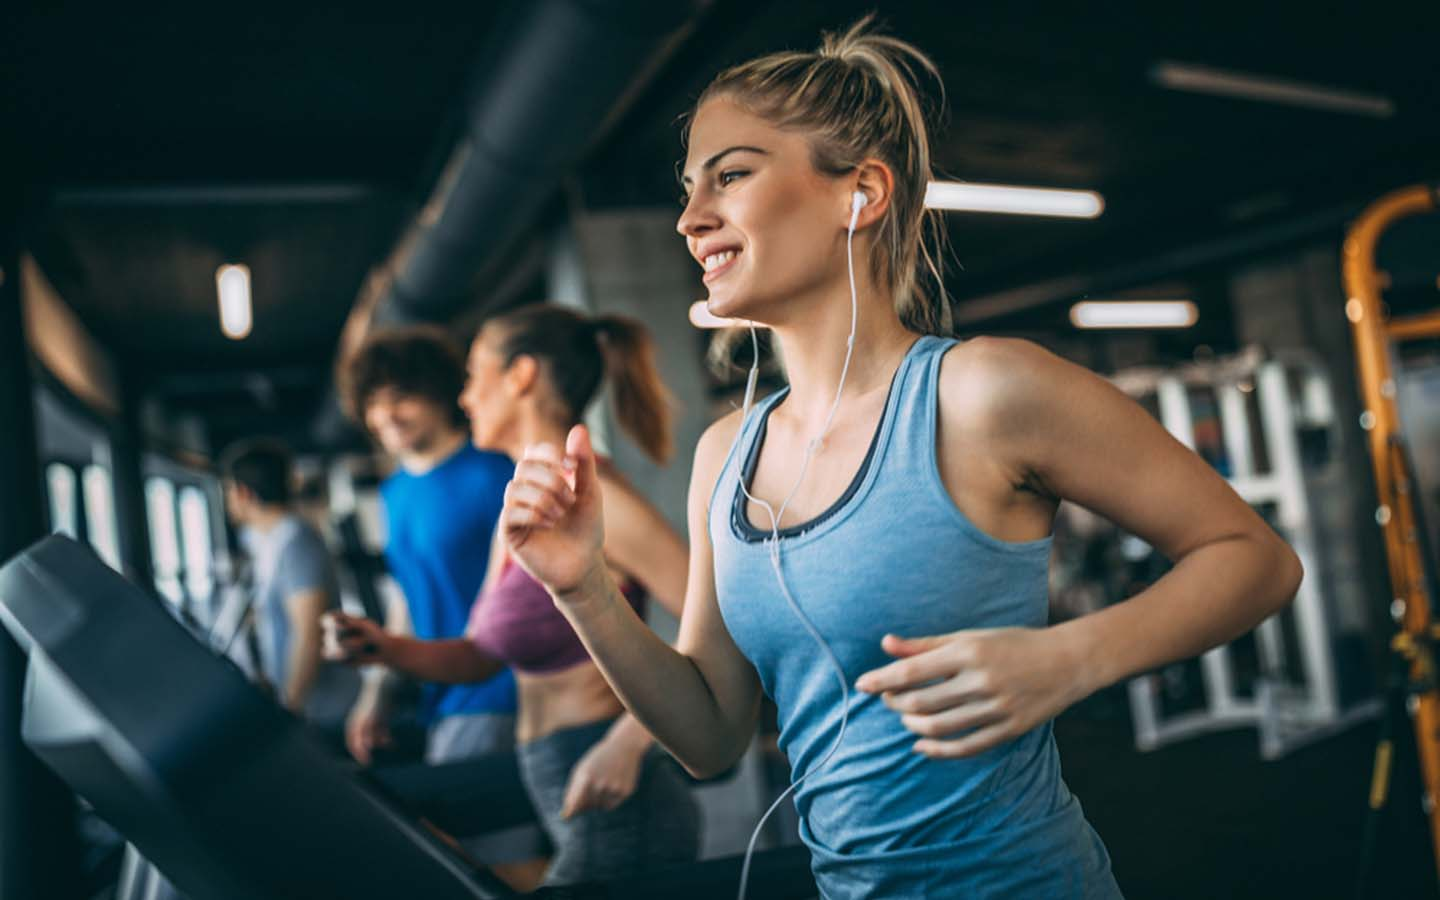 Women are running simultaneously on different treadmills at the gym